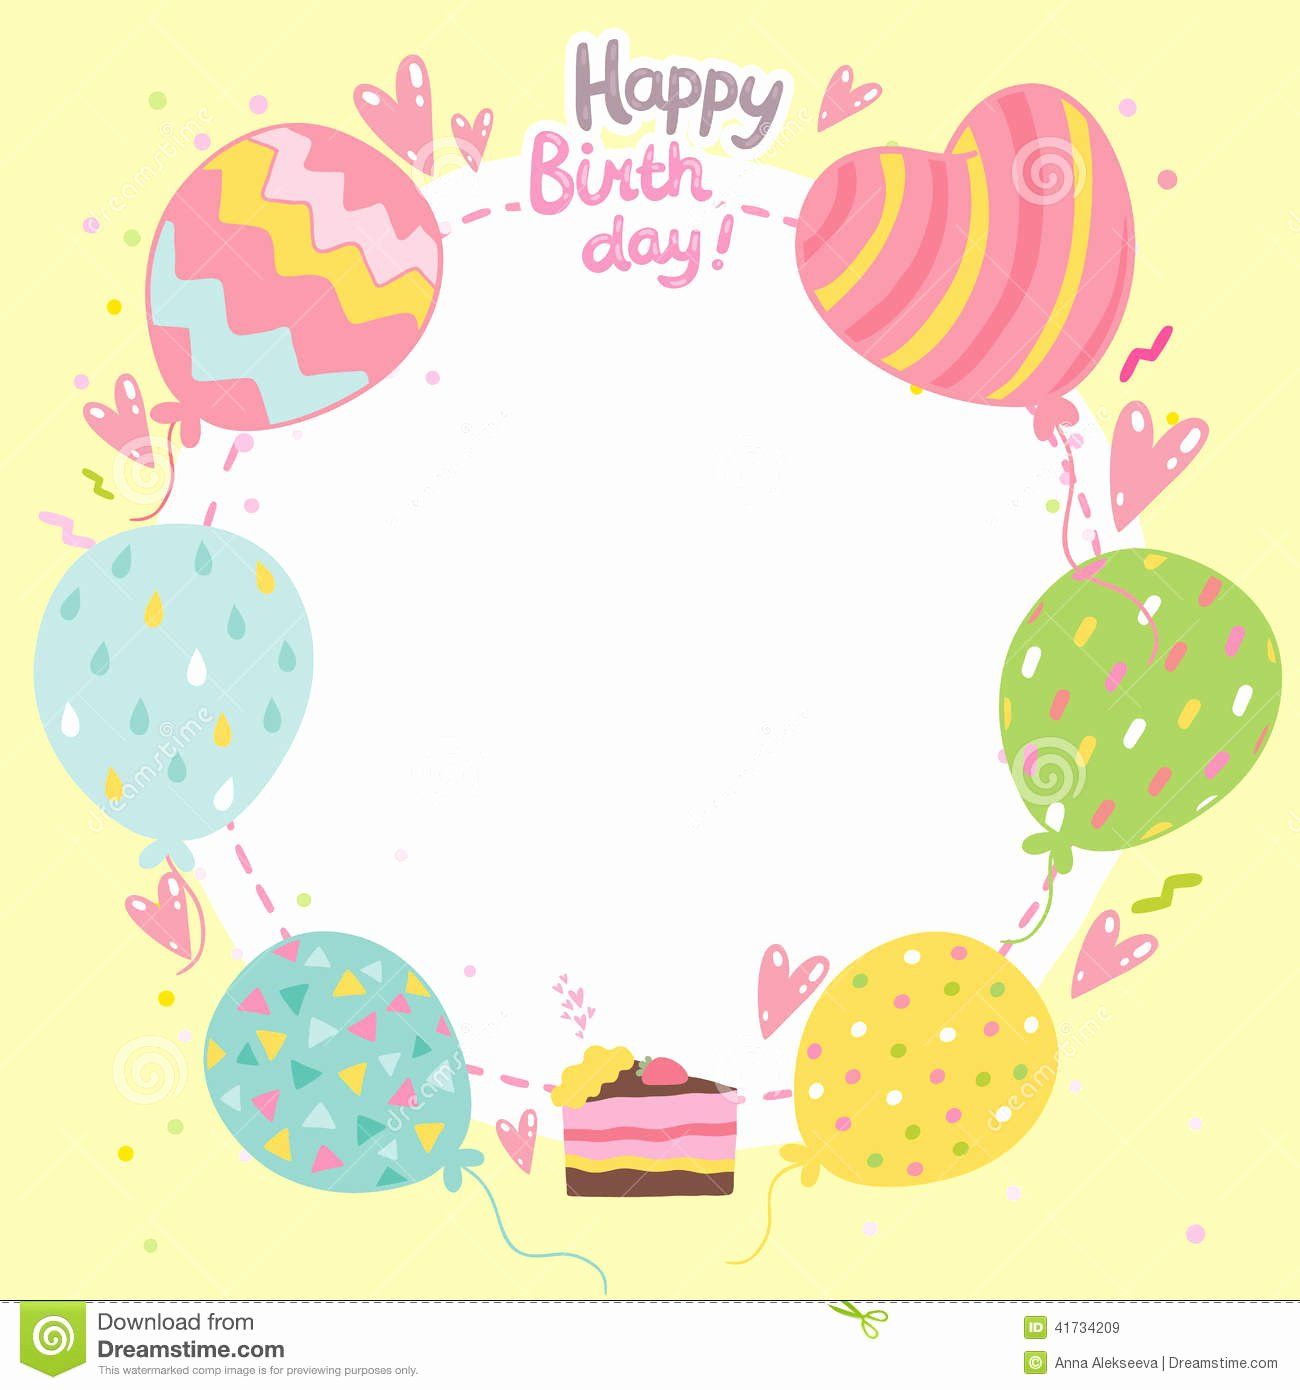 Happy Birthday Template Word Inspirational Birthday Card Template